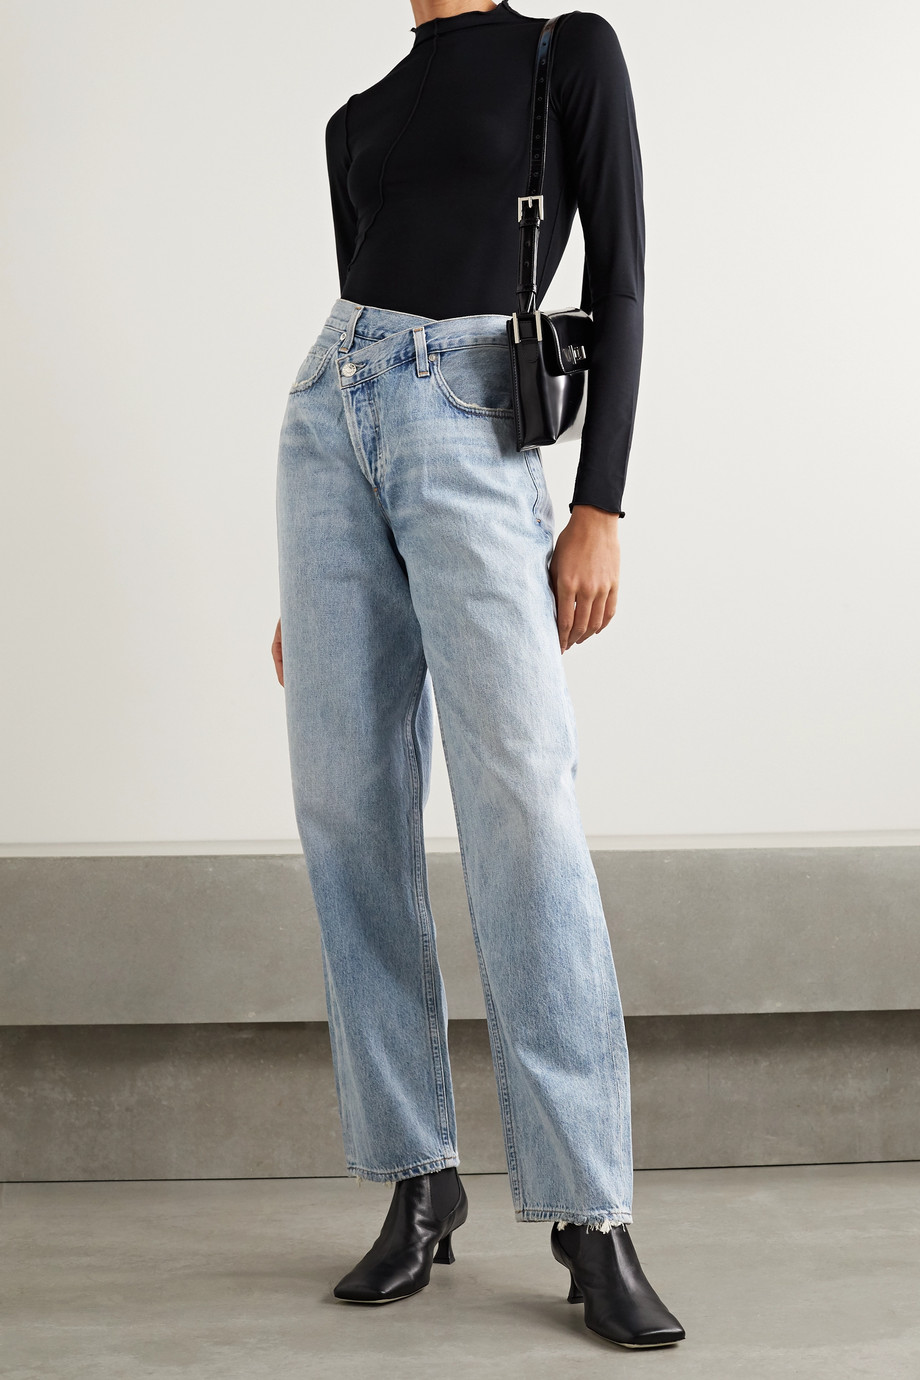 AGOLDE Criss Cross Upsized distressed high-rise wide-leg jeans